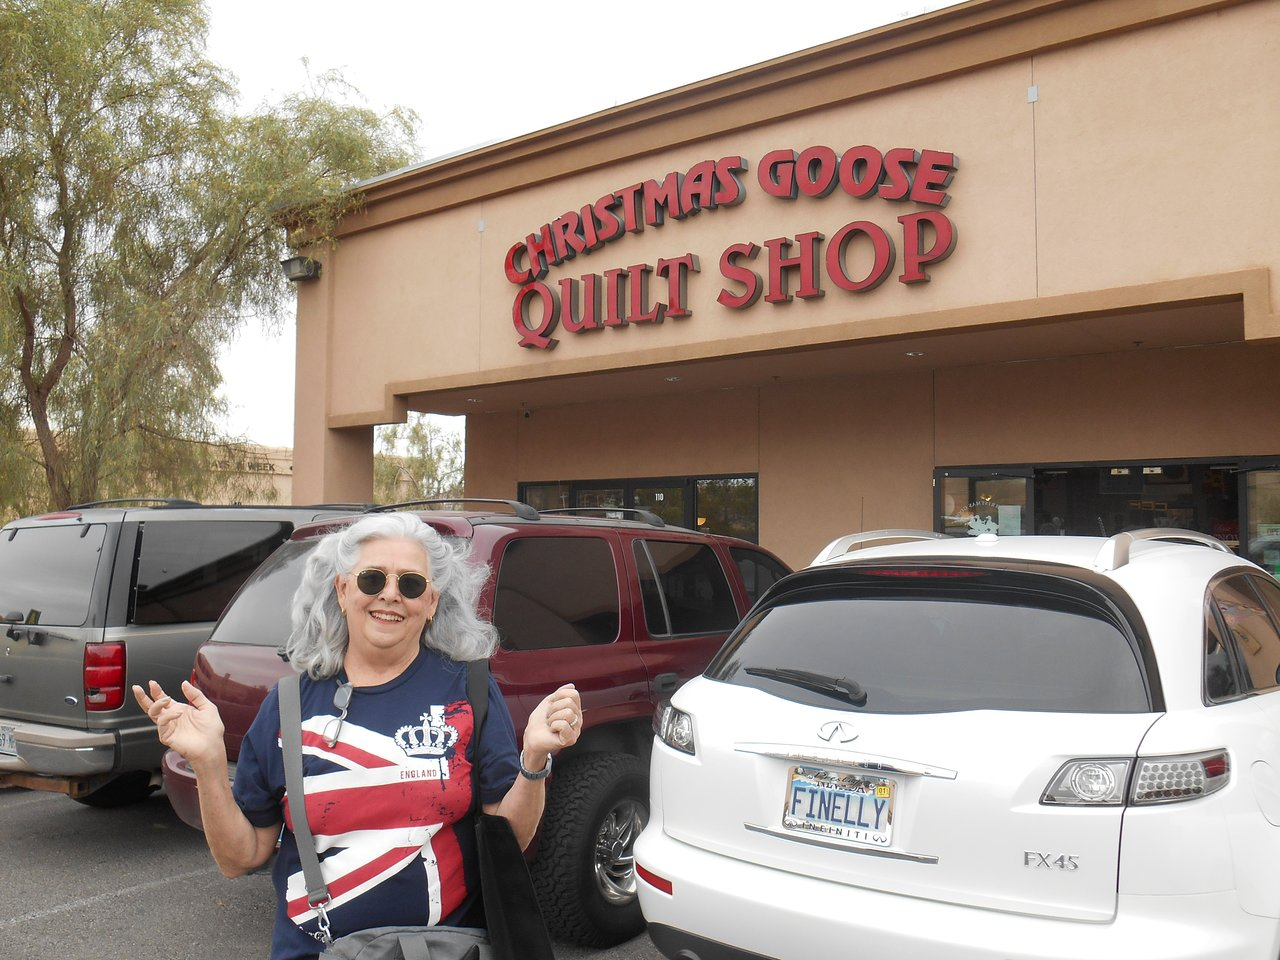 The Christmas Goose Quilt Shop Las Vegas 2020 All You Need To